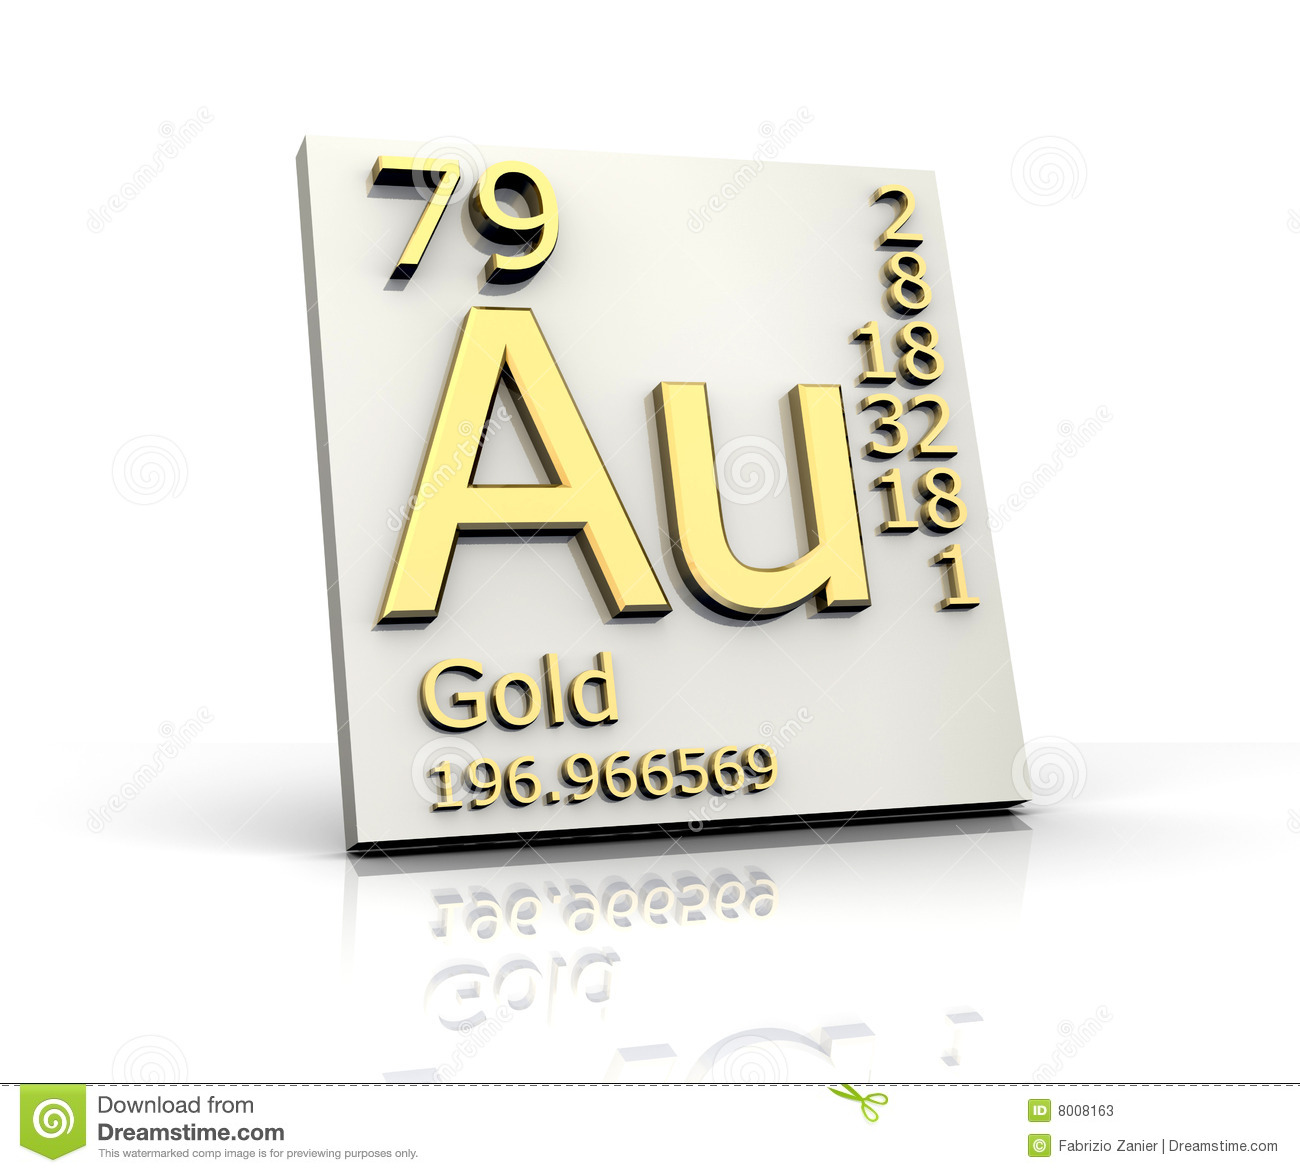 Tucsoniron together with Catalytic Converters Why Theives Steal Them further Using Metal Price Indexes To Track Obscure Metals also Forecast together with Donald Trump Silver Round 2 Oz High Relief   Elemetal Mint. on scrap copper prices